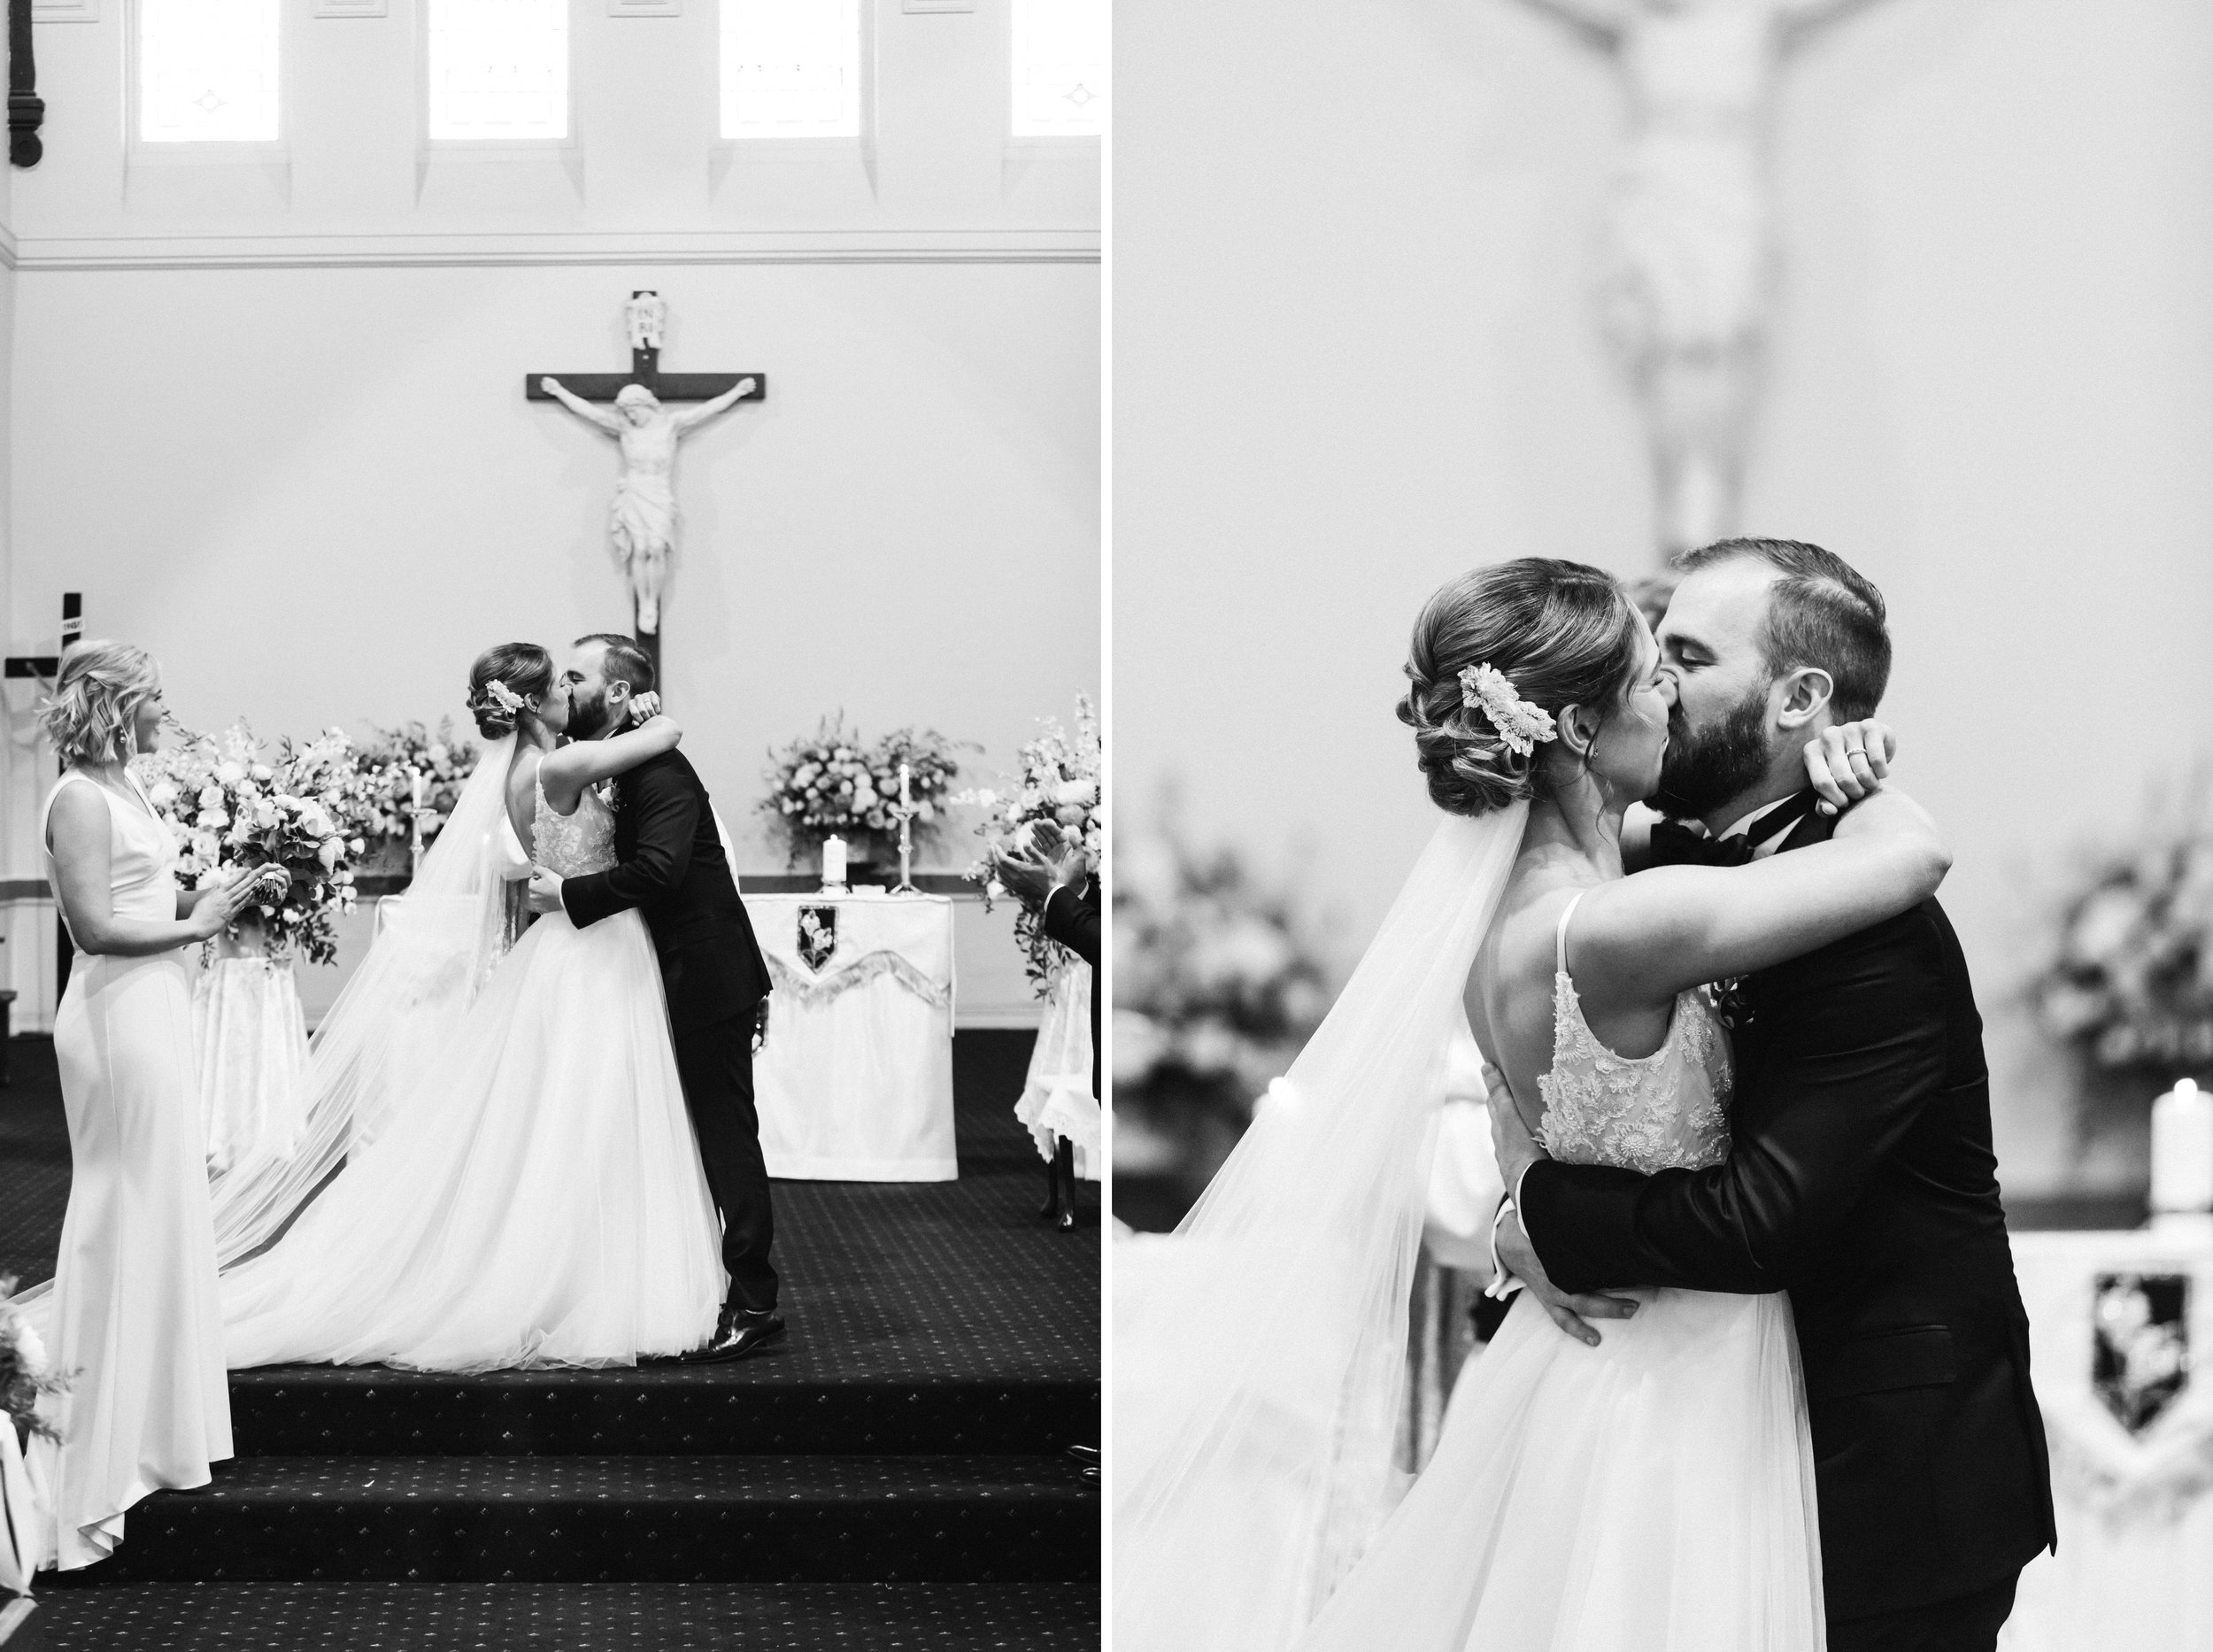 Adelaide Wedding 2019 067.jpg